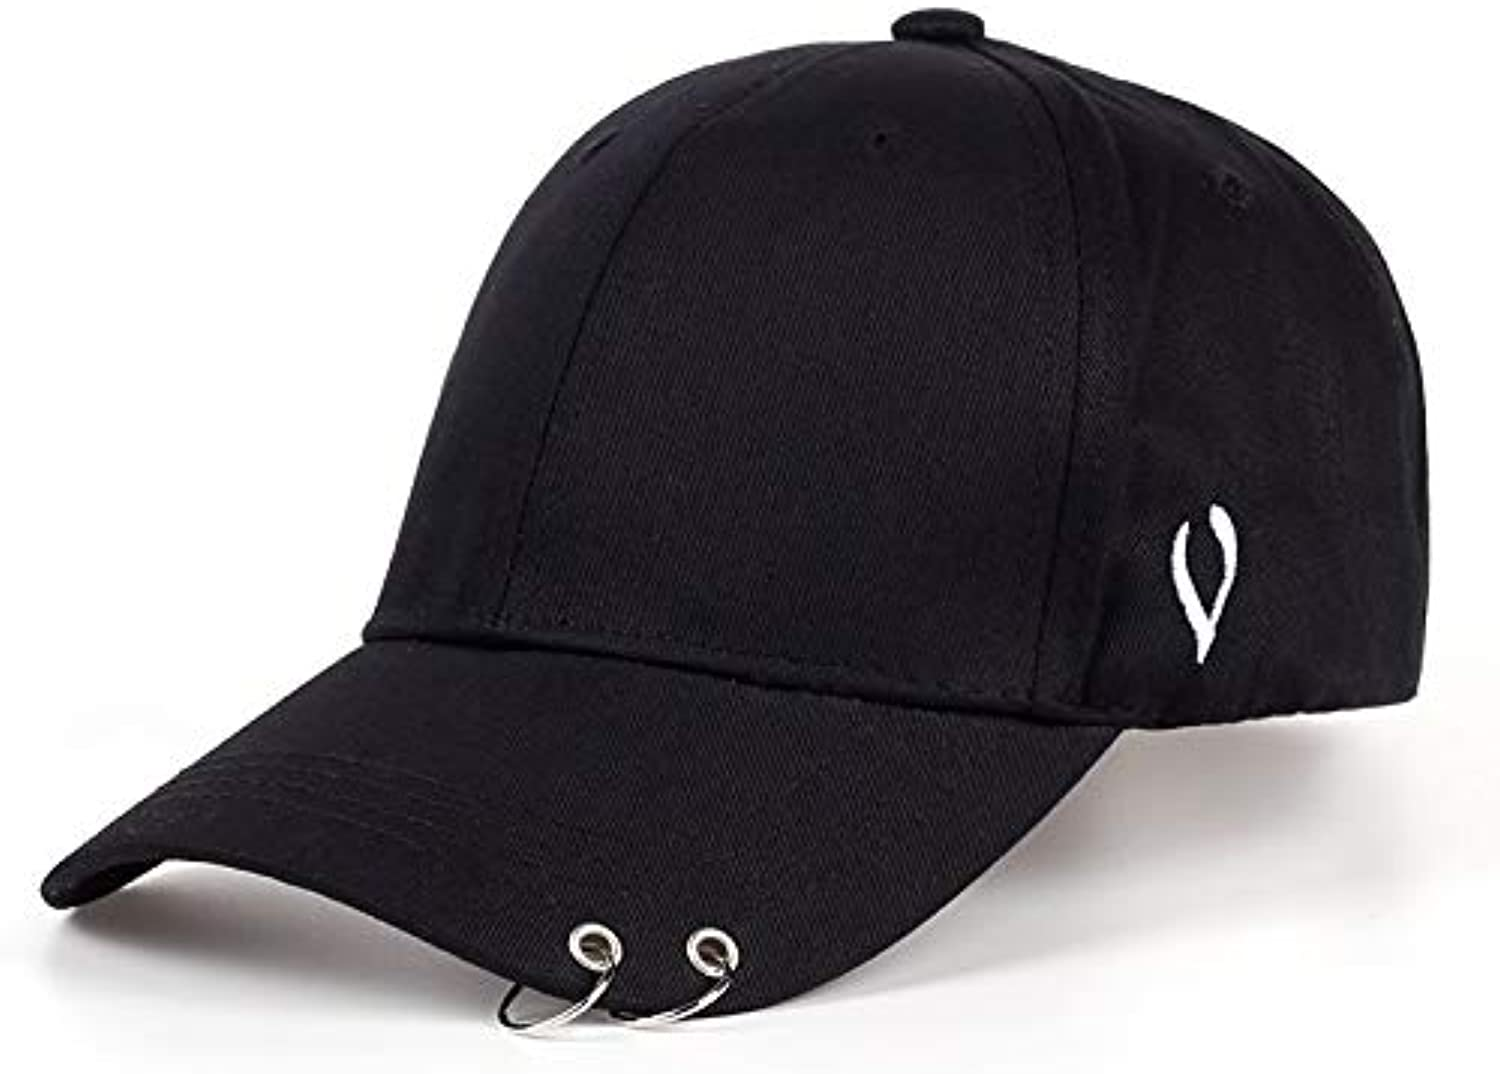 AAMOUSE Hiphop Men and Women Fall hat Fashion AdjustableBaseball Cap Men and Women Retro hat Sports Suit Wholesale